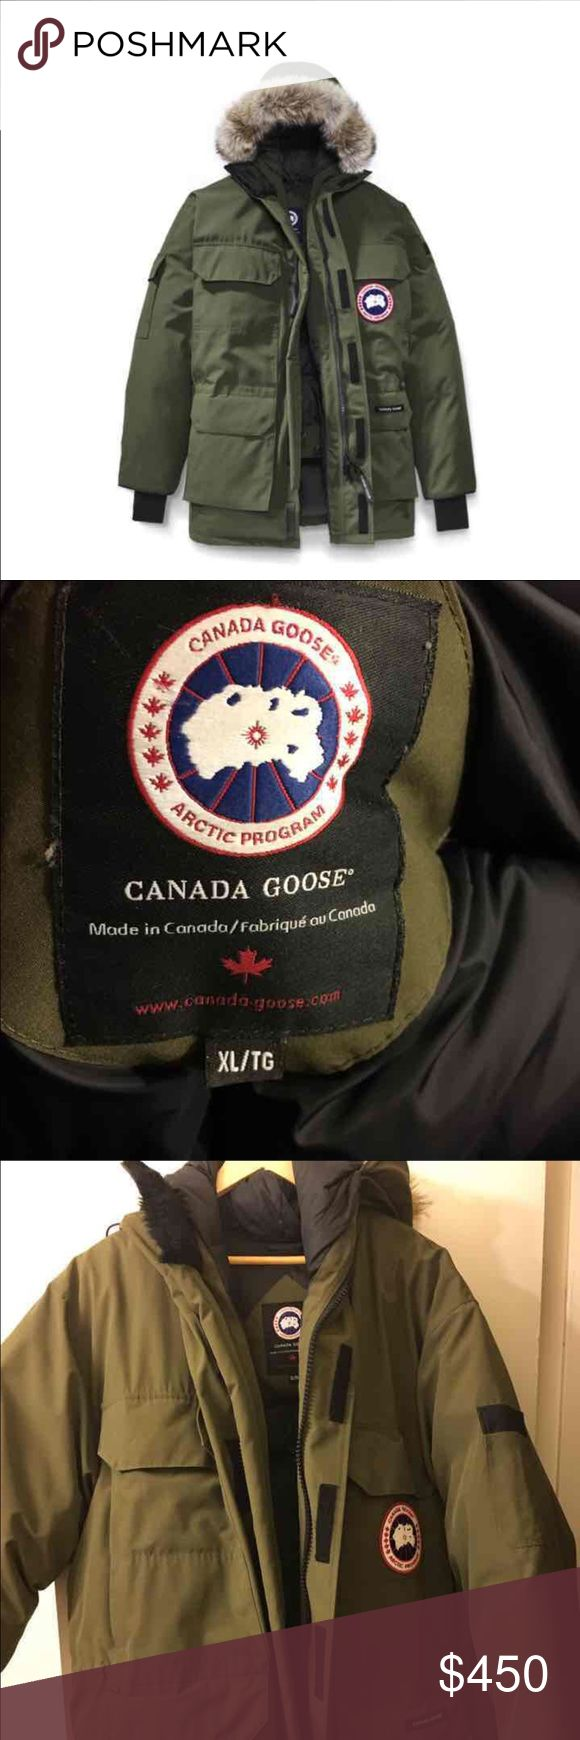 MENS NWOT CANADA GOOSE New! Worn for a week!! This is COAT that retails over $1000 ! It's a level 6 and is a steal Canada Goose Jackets & Coats Puffers